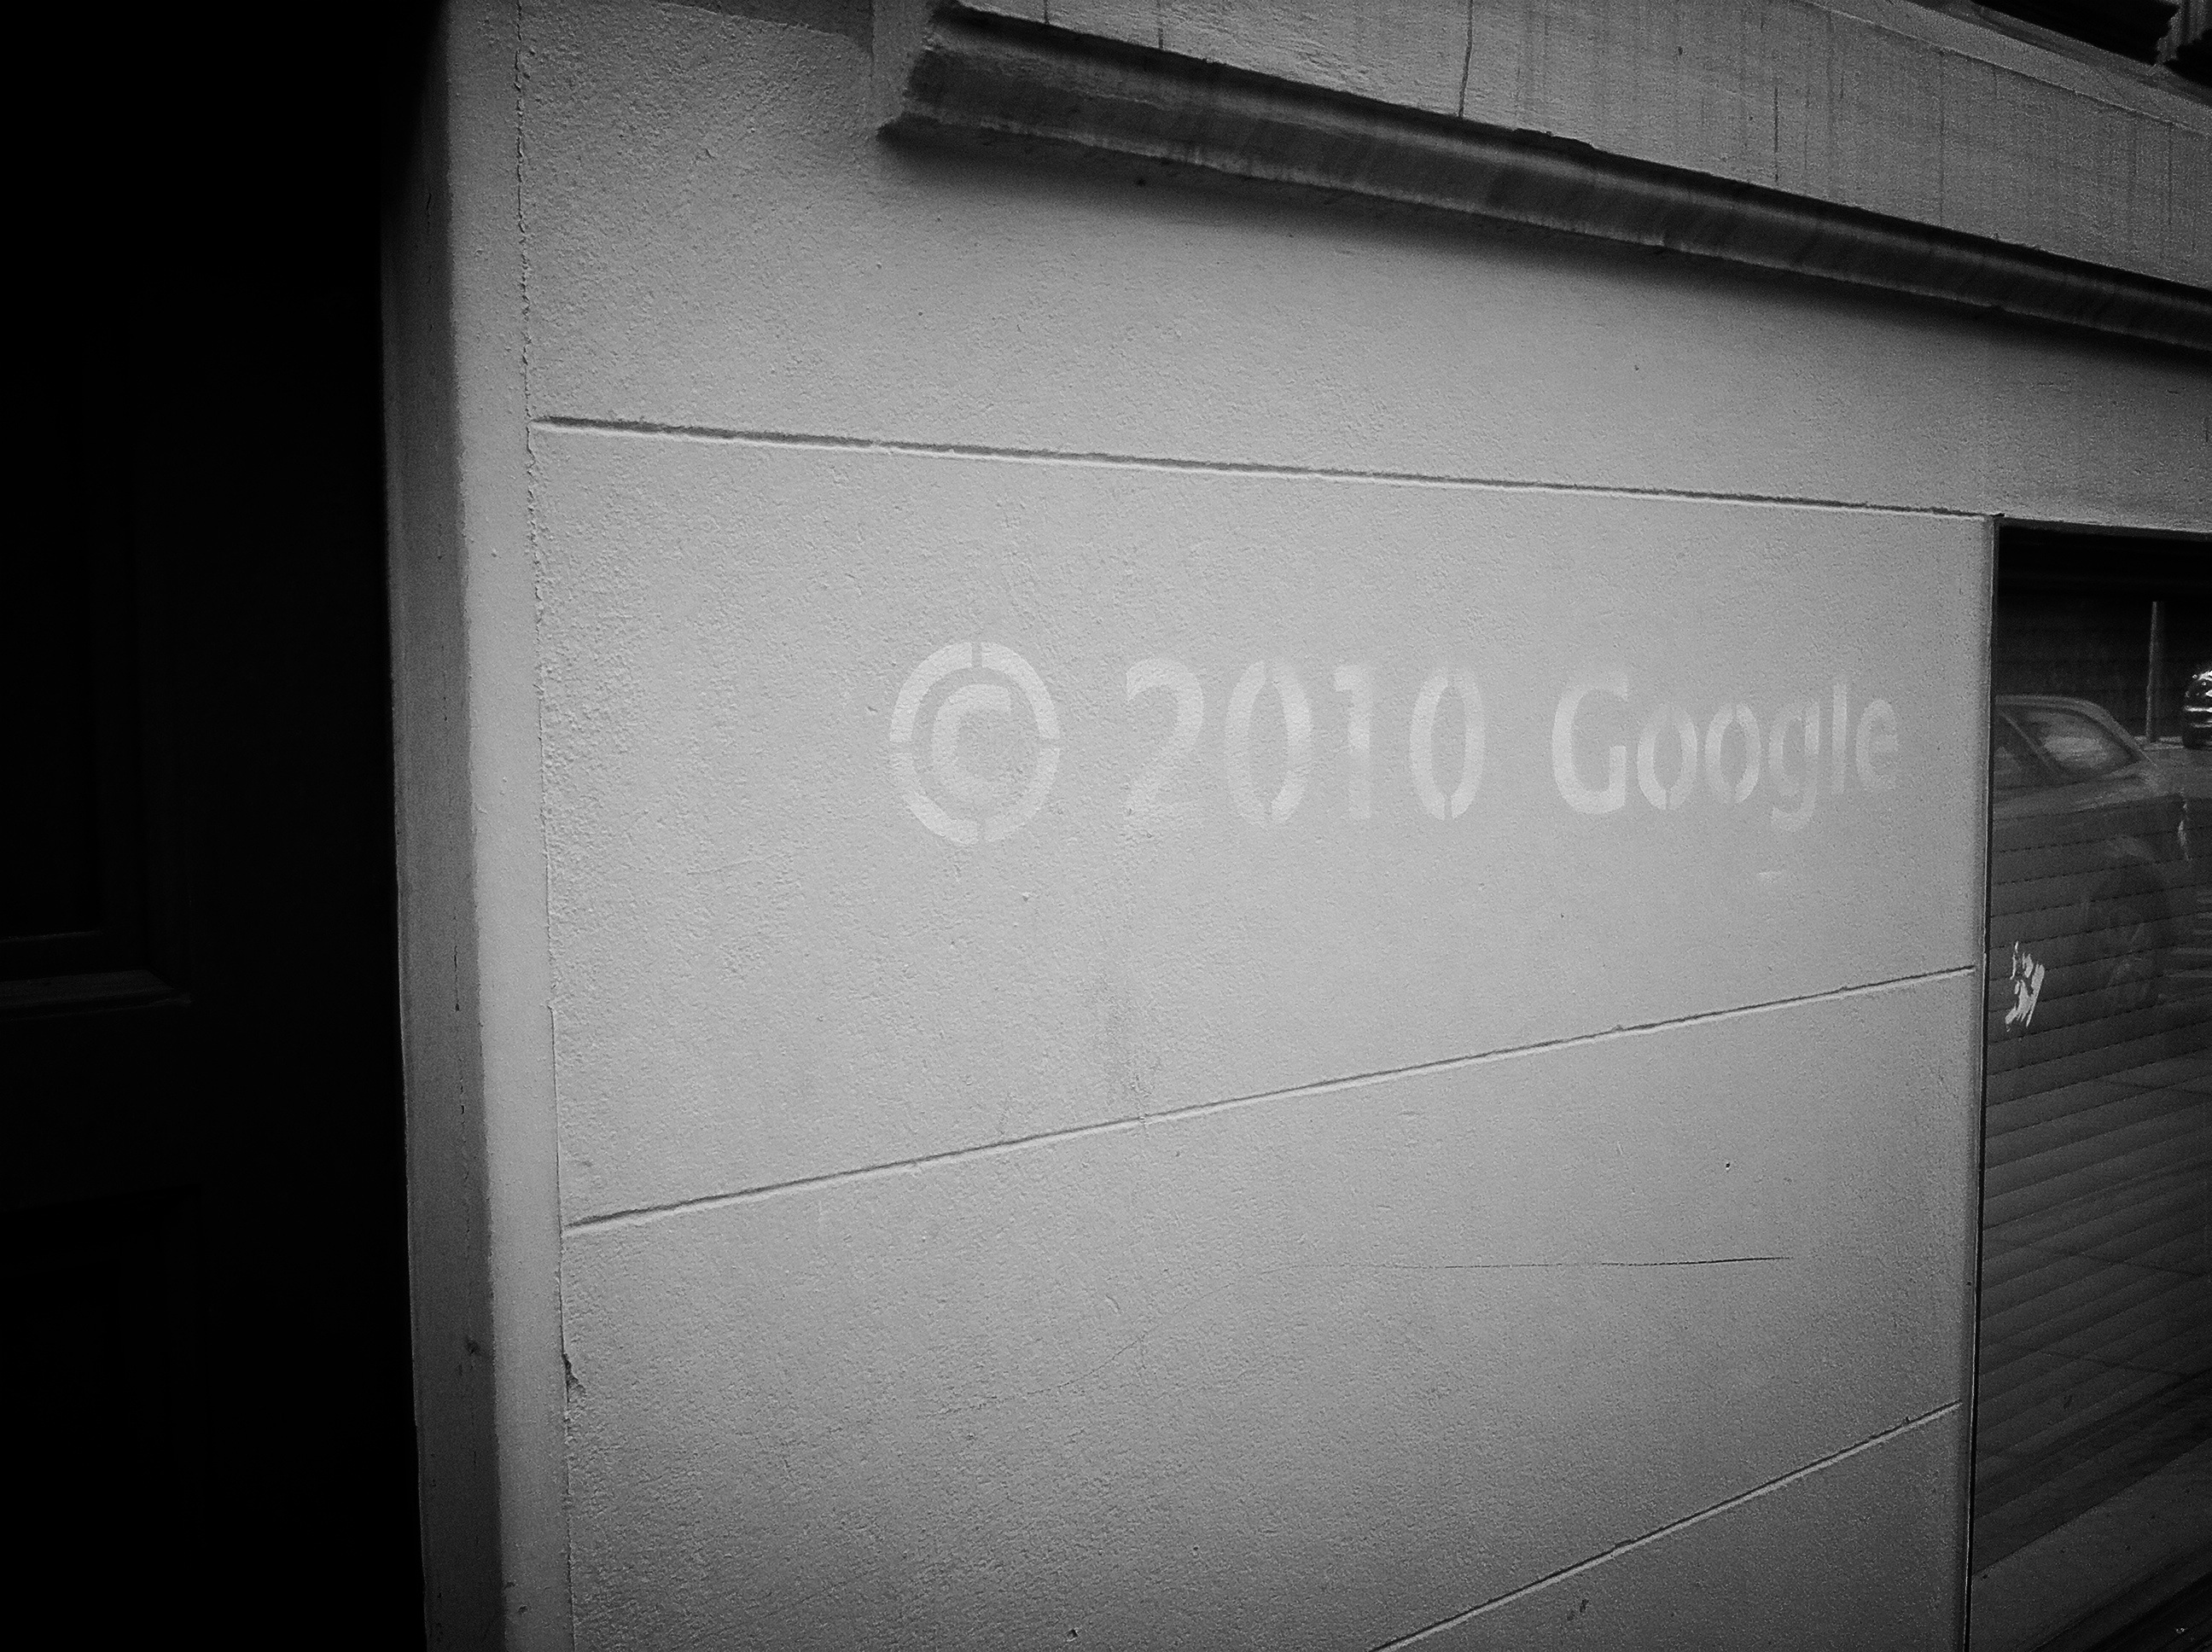 A photograph of an anti-Google graffiti comment.